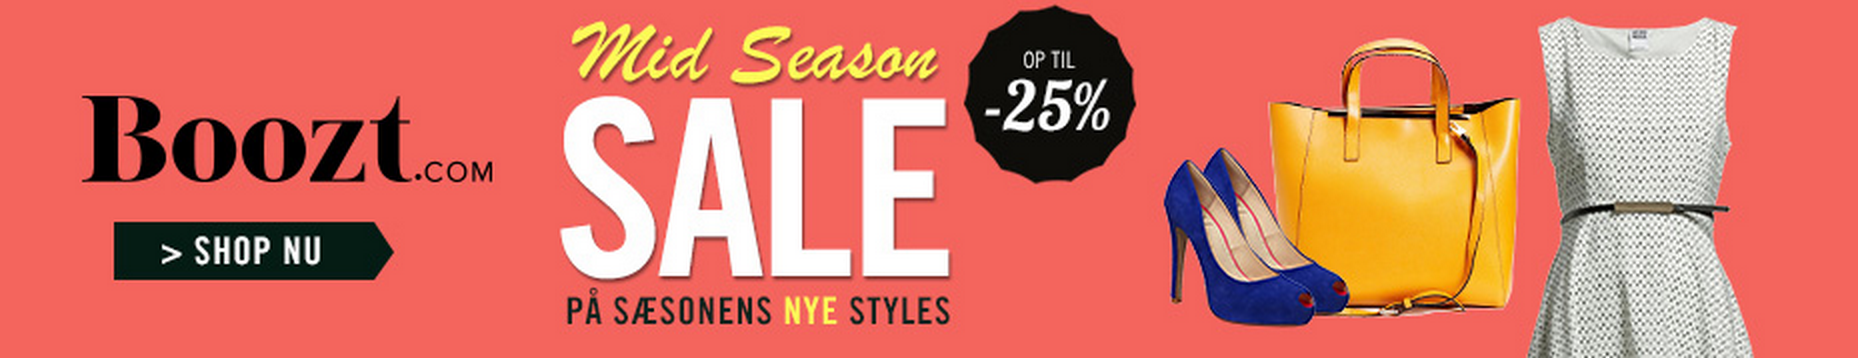 Boozt Mid Season Sale